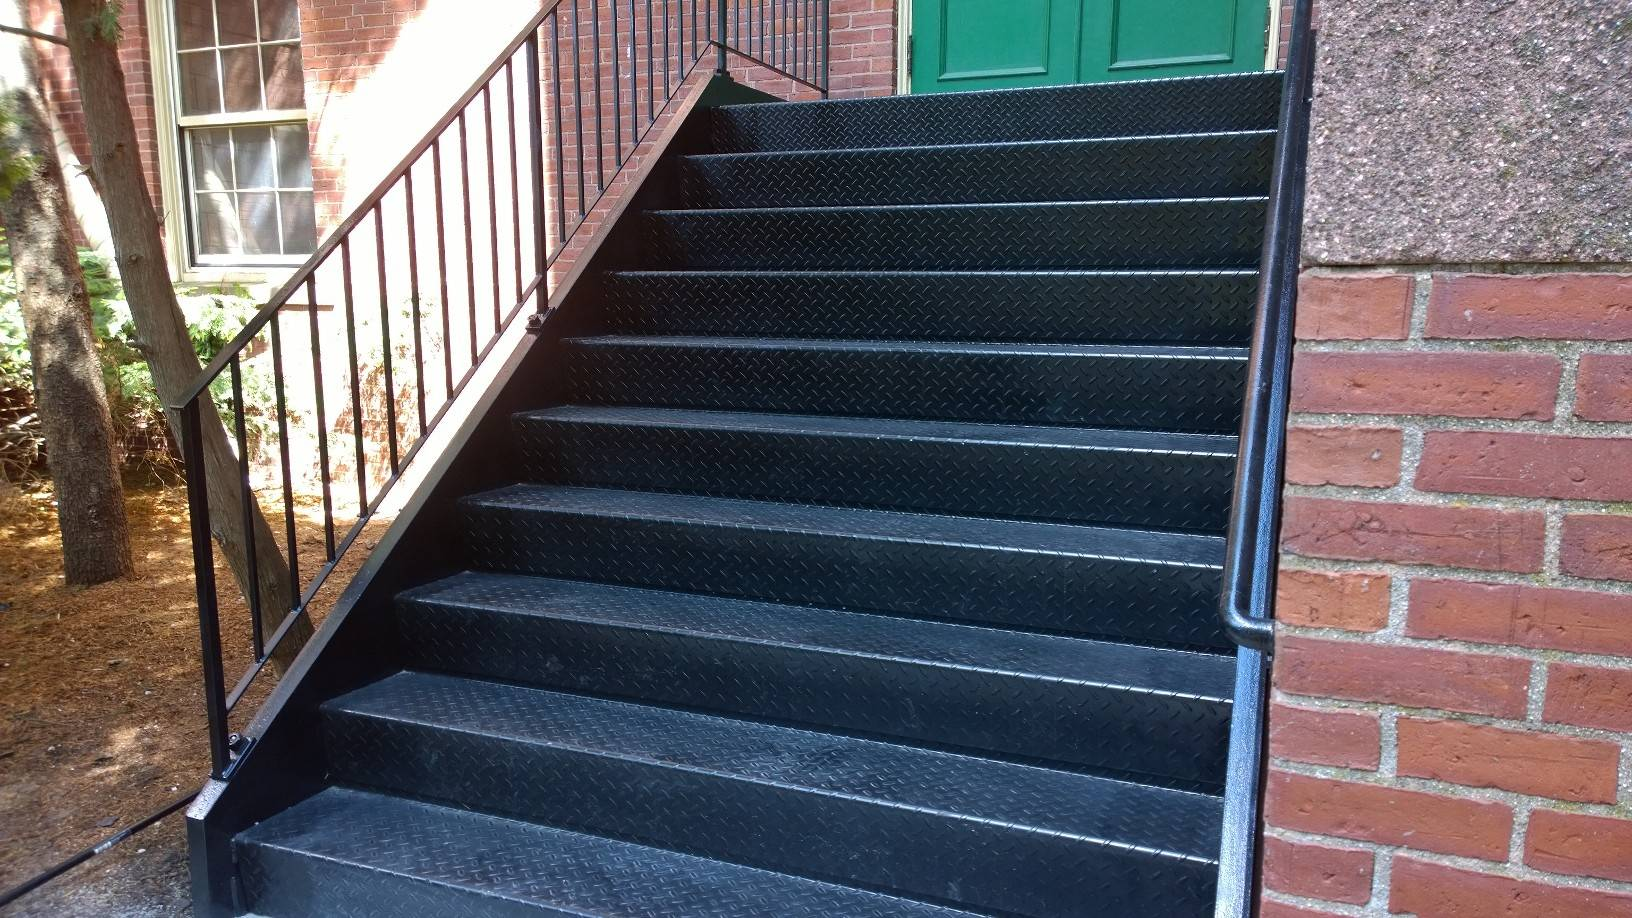 After Image 2: New Color Galvanized Staircase Fully Installed